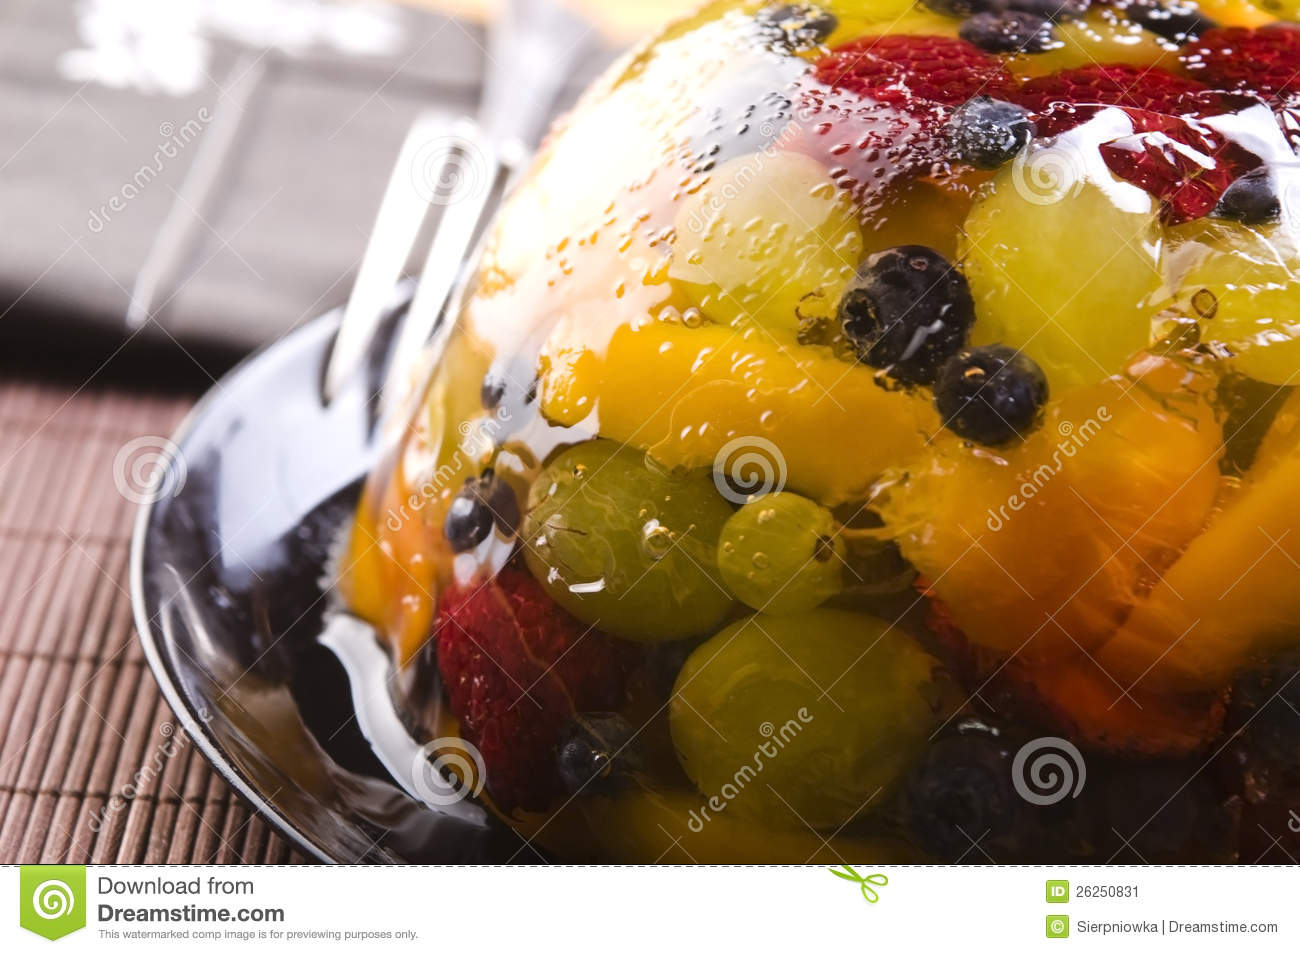 Summer Berry Jelly Terrine Stock Image - Image: 26250831